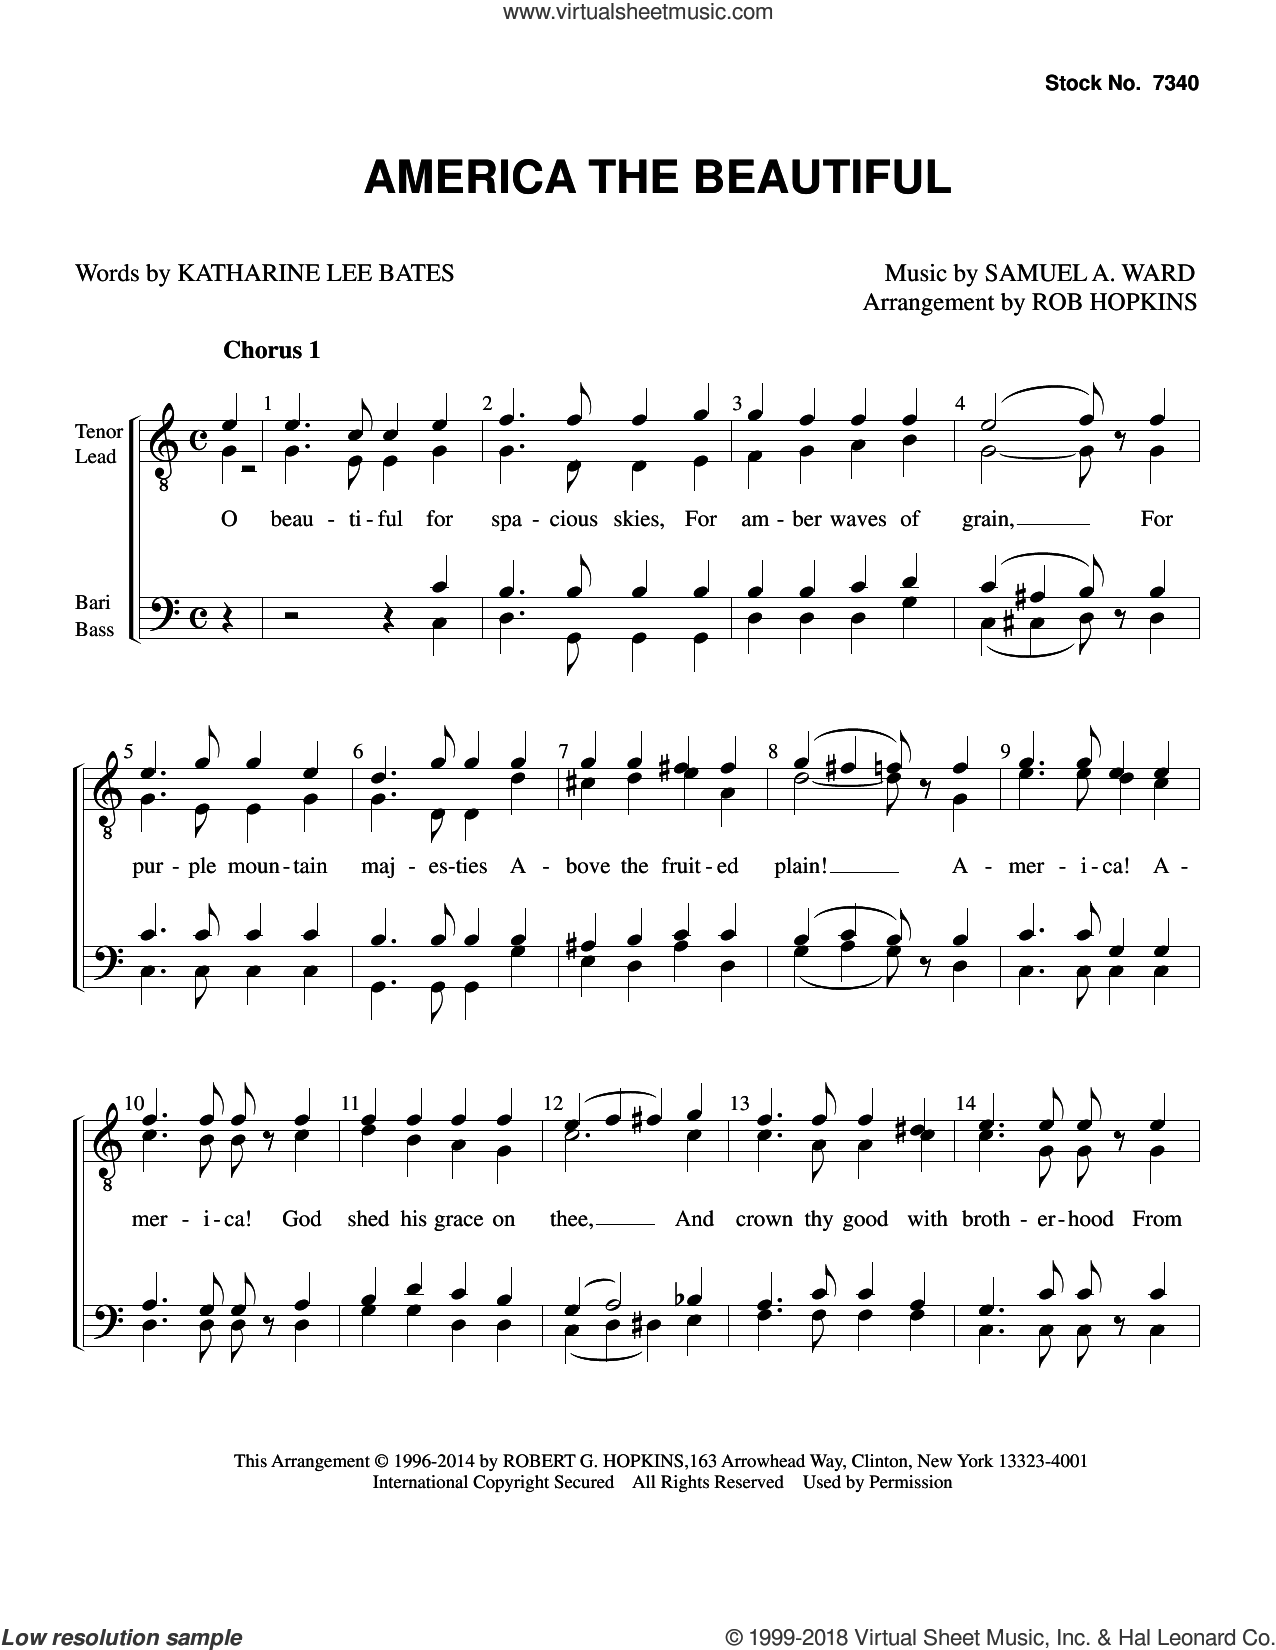 America, the Beautiful (arr. Rob Hopkins) sheet music for choir (TTBB: tenor, bass) by Samuel Augustus Ward, Rob Hopkins and Katherine Lee Bates, intermediate skill level